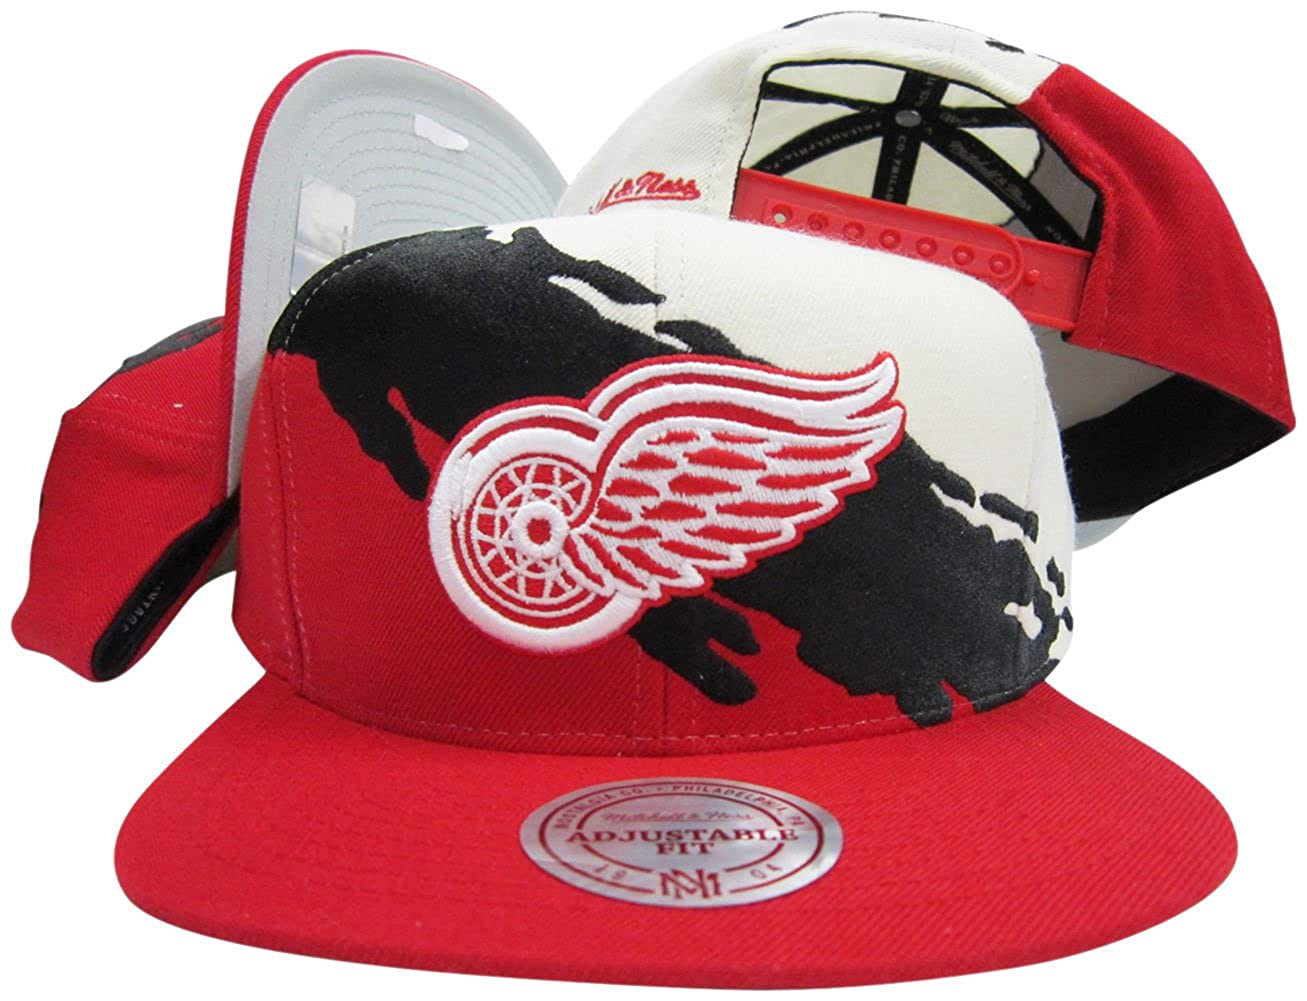 8550f629e0f Amazon.com  Mitchell   Ness Detroit Red Wings Snapback Adjustable Plastic  Snap Hat Cap  Clothing